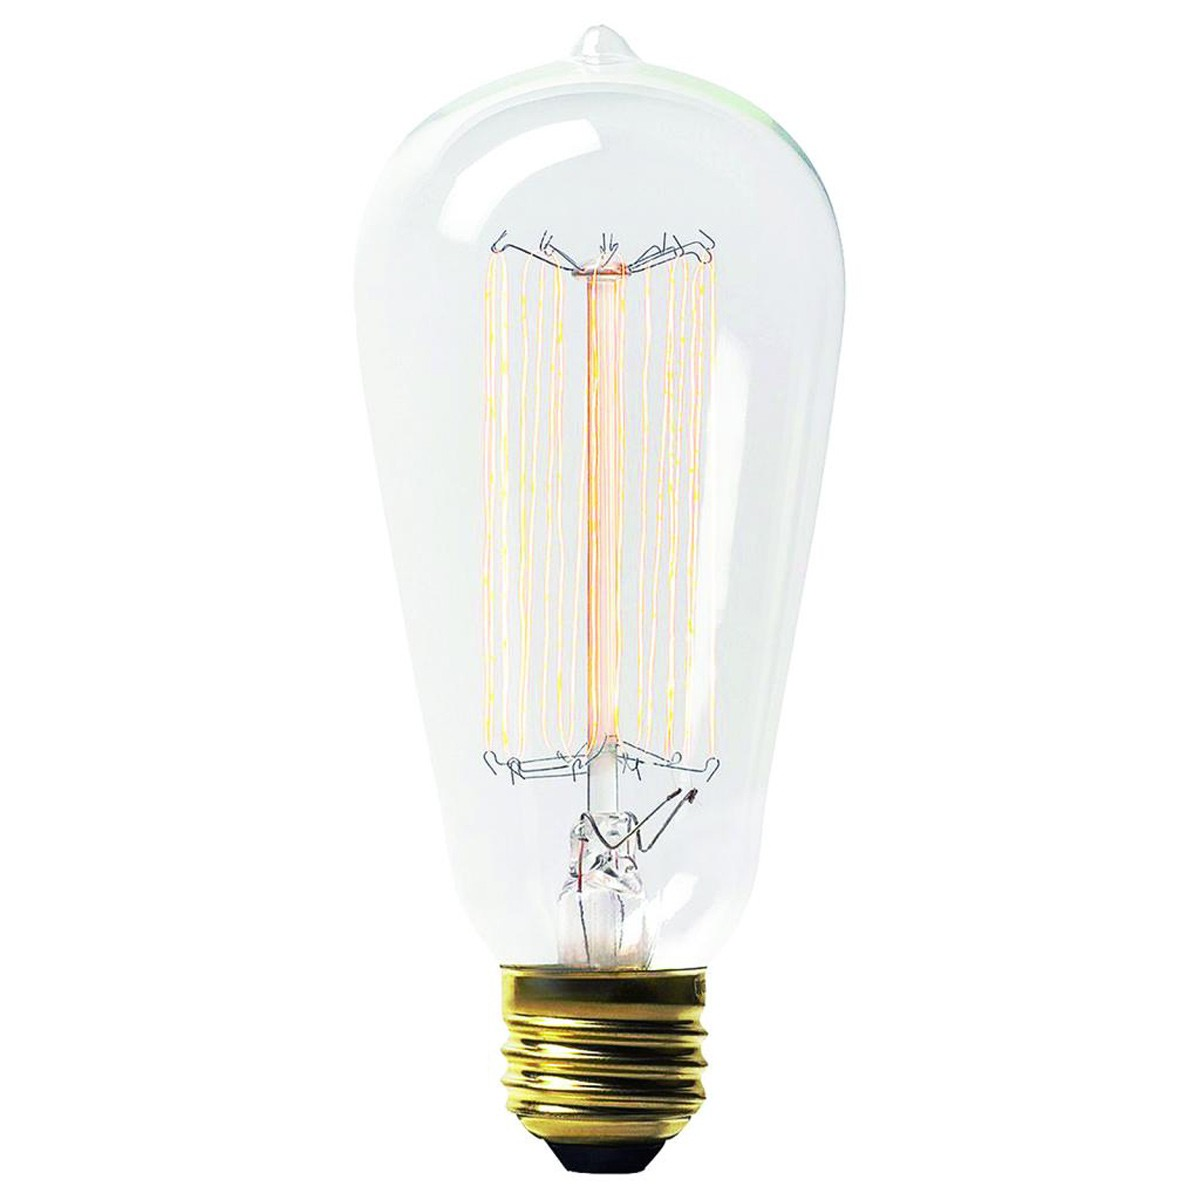 Ren-Wil Retro Light Bulb